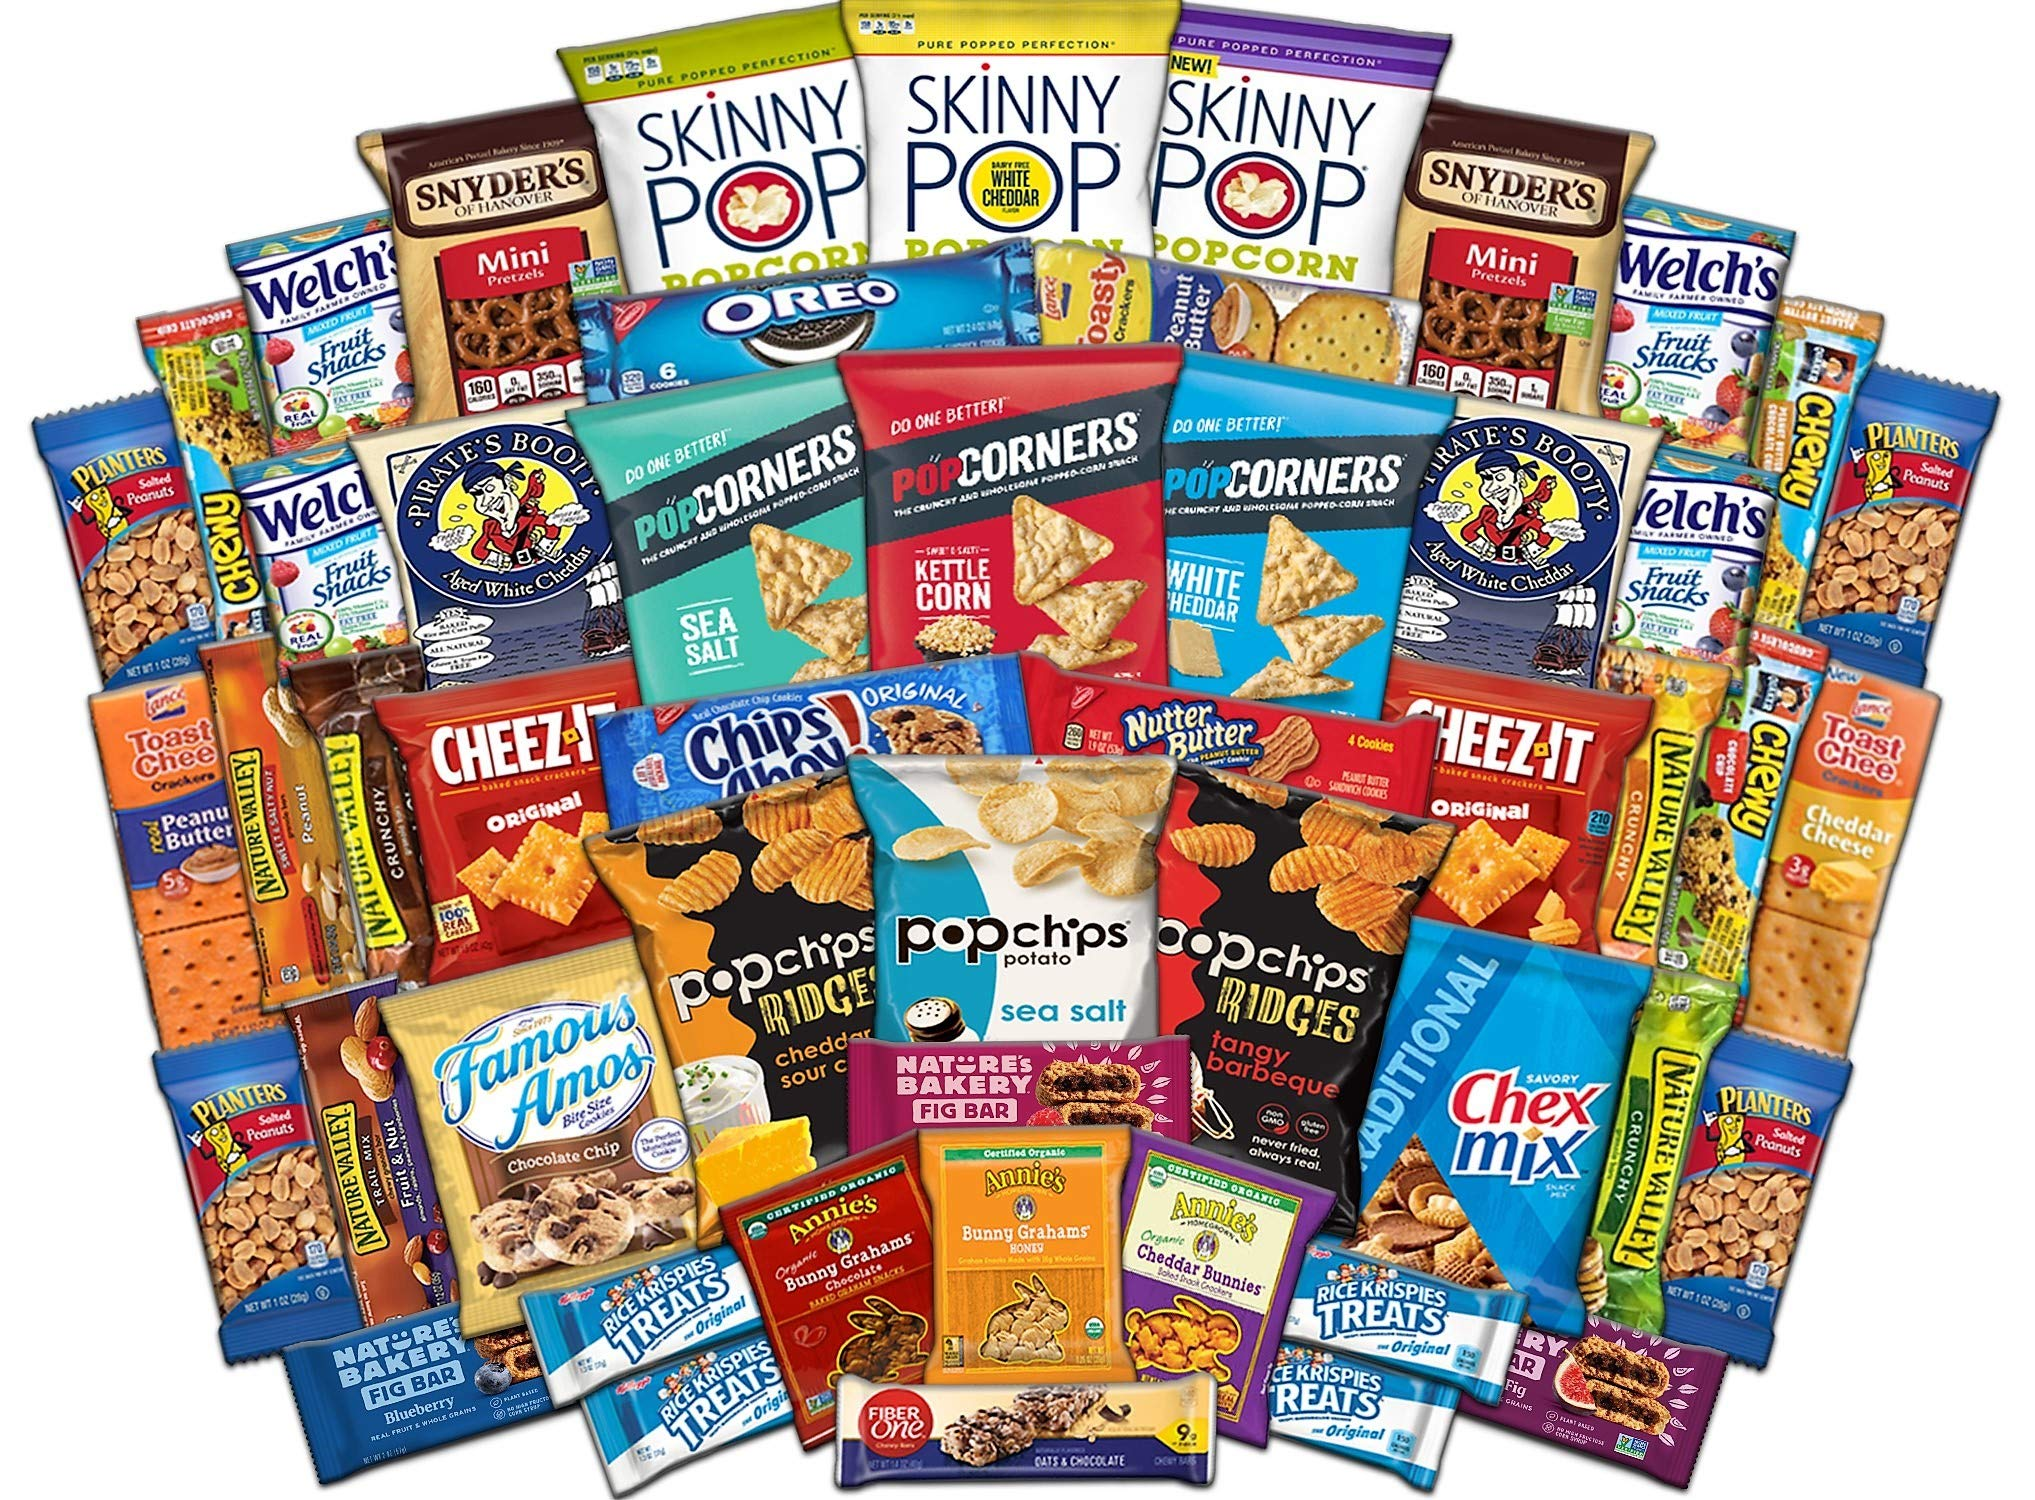 Ultimate Snack Assortment Care Package - Chips, Crackers, Cookies, Nuts, Bars - School, Work, Military or Home (50 Pack)